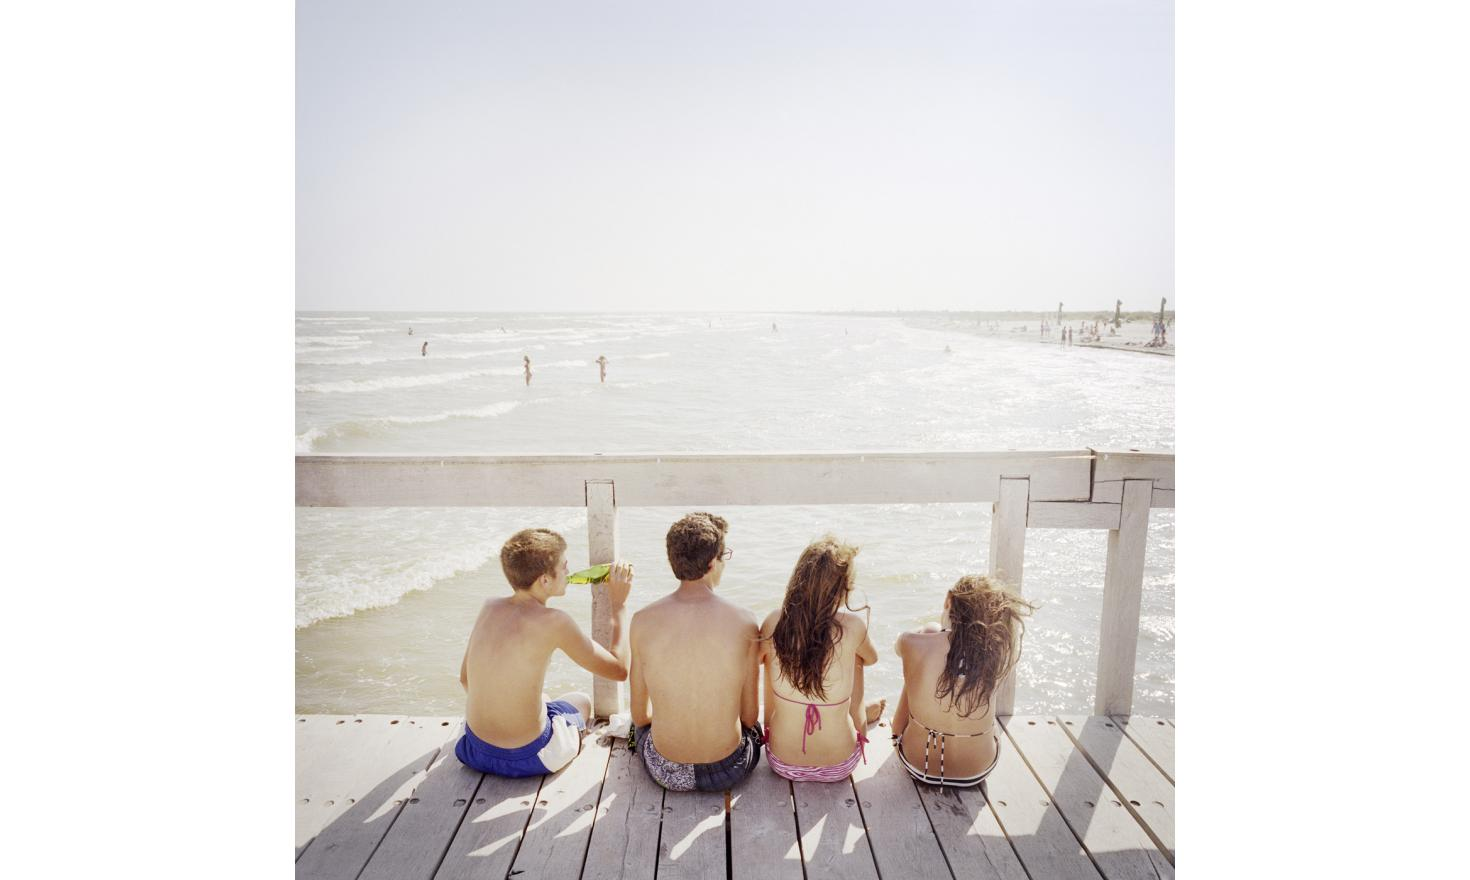 ulina beach. It is the principal attraction of the city with the delta. Young people from Sulina